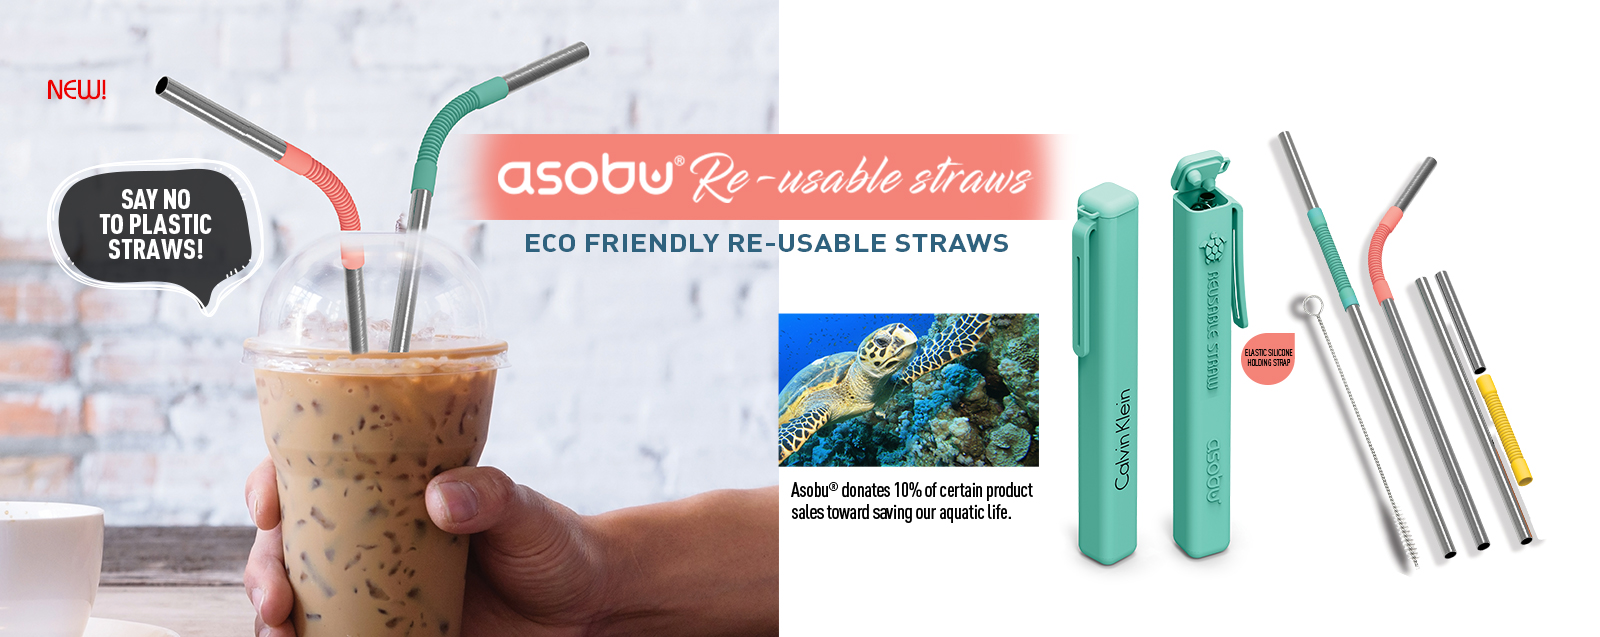 Asobu Reusable Straws